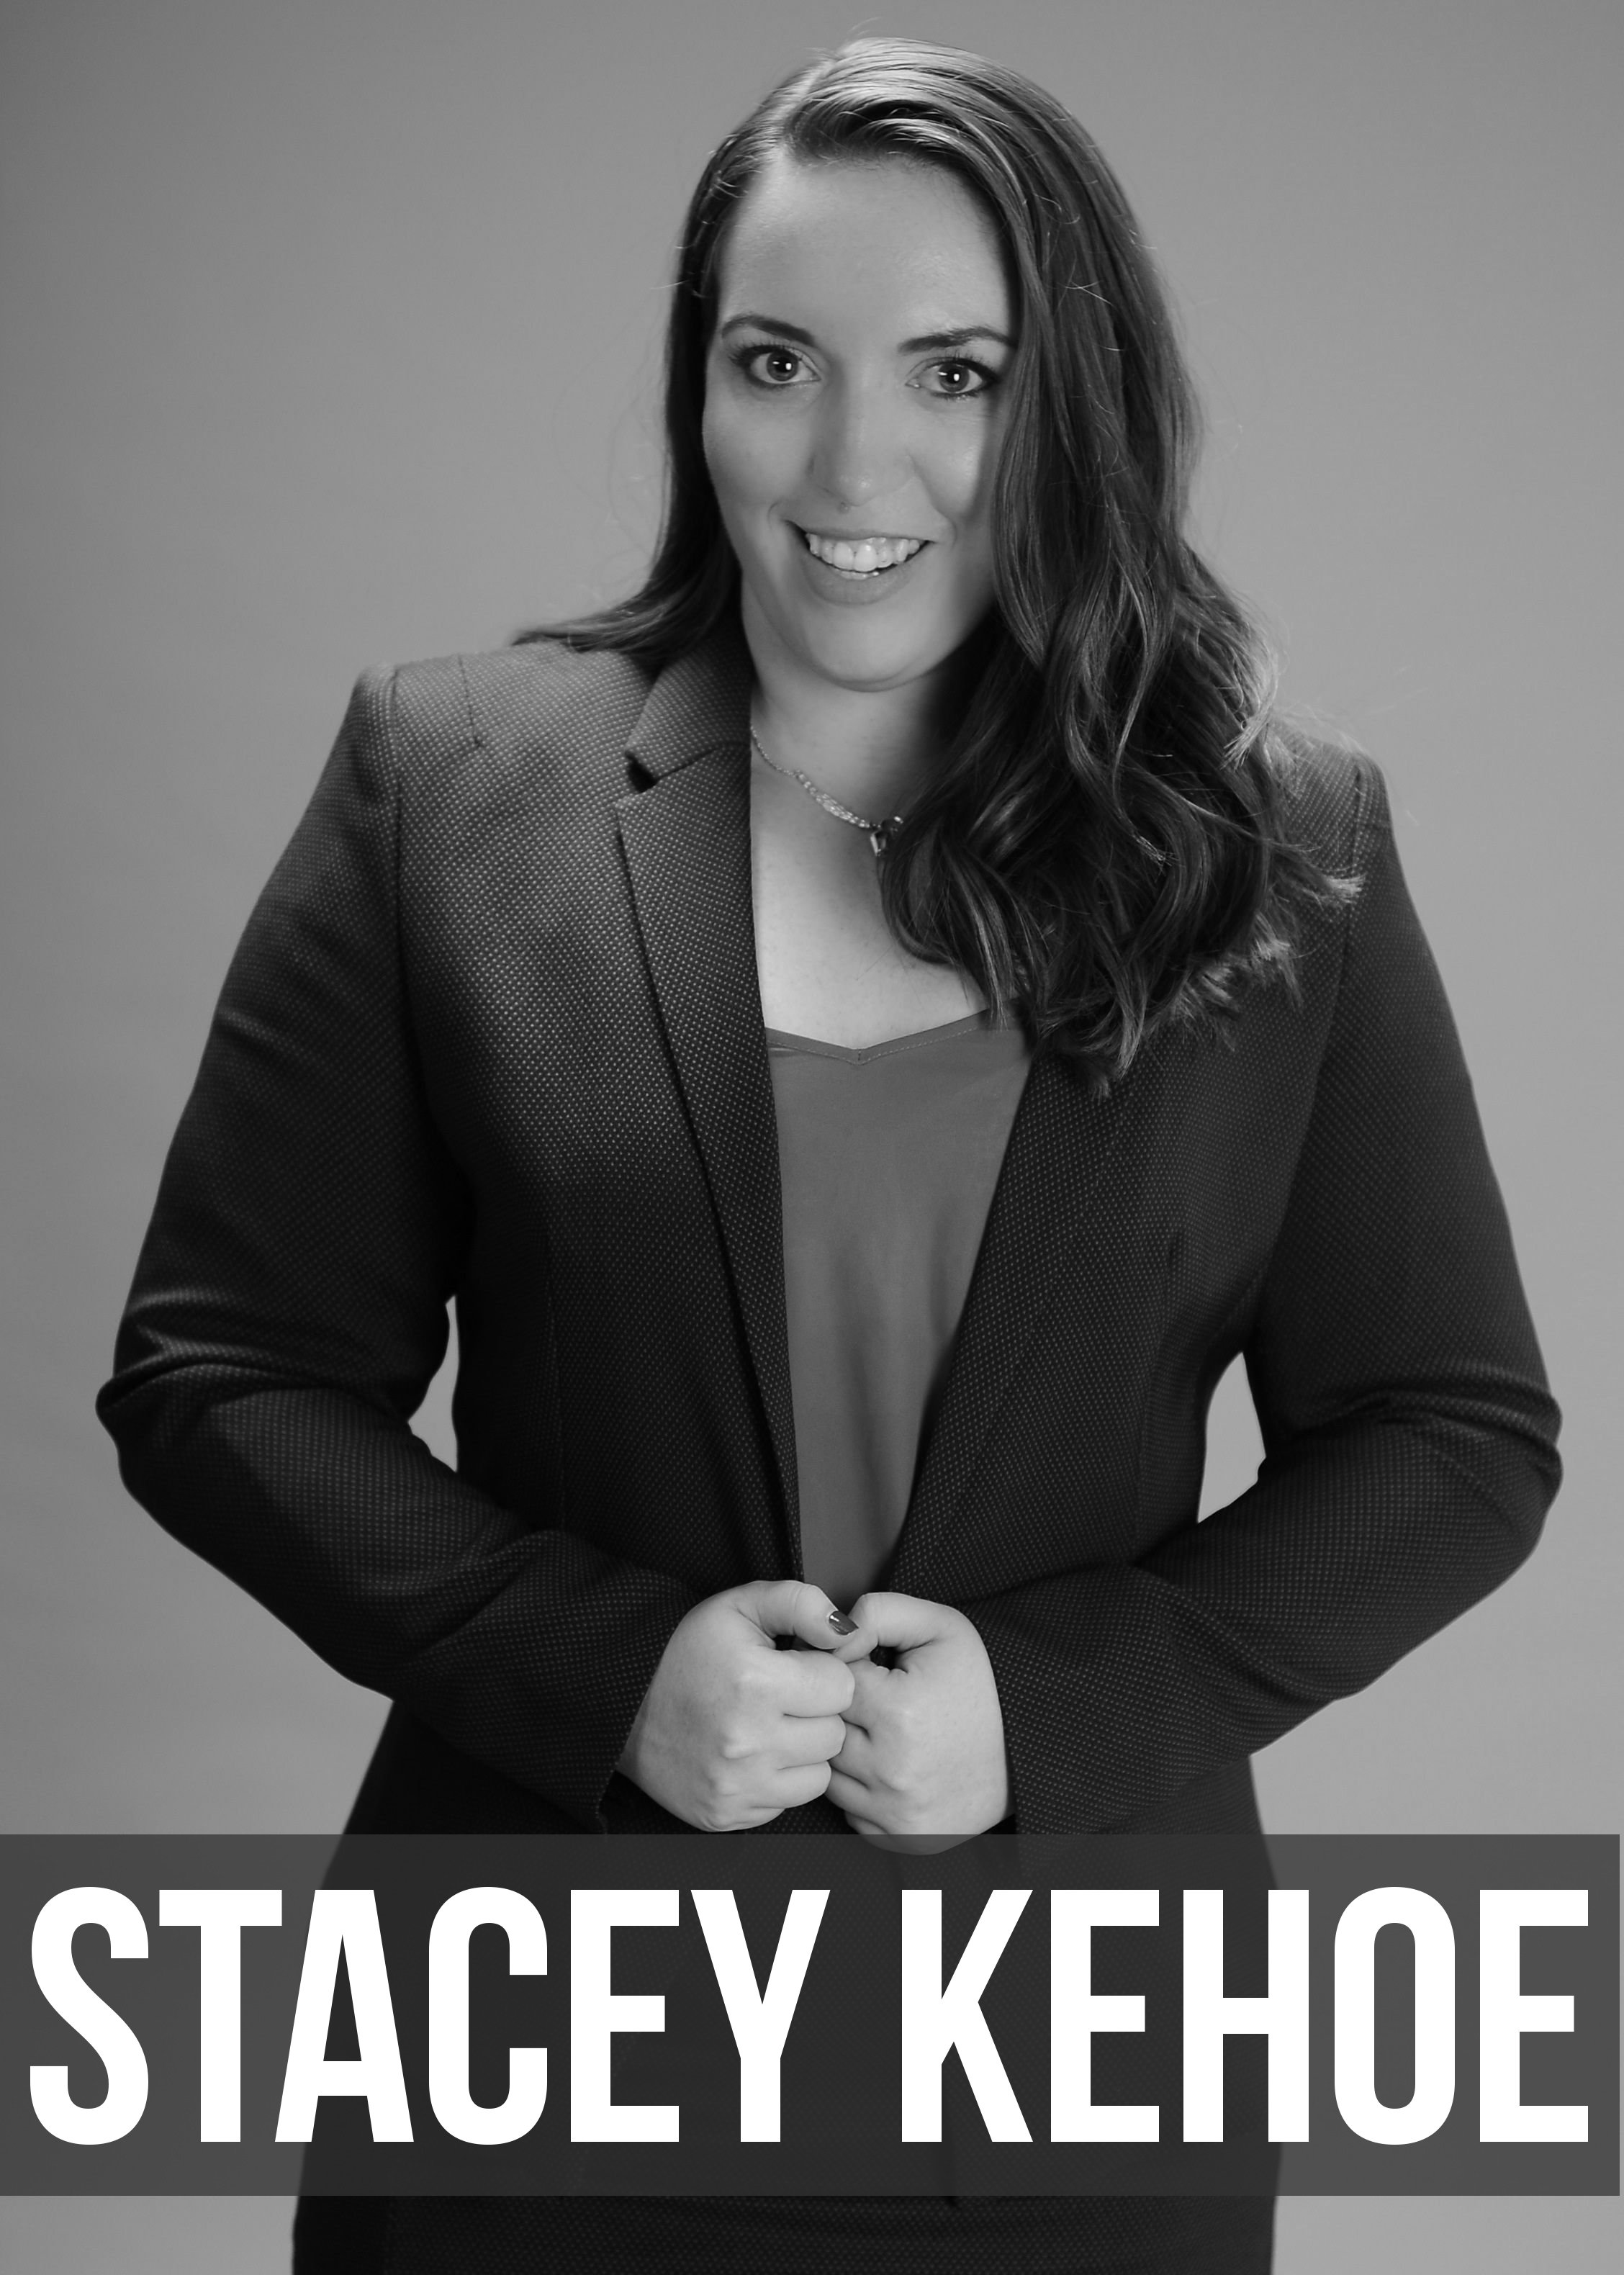 Stacey kehoe Founder and Communications Director of Brandlective Communications bw final v2